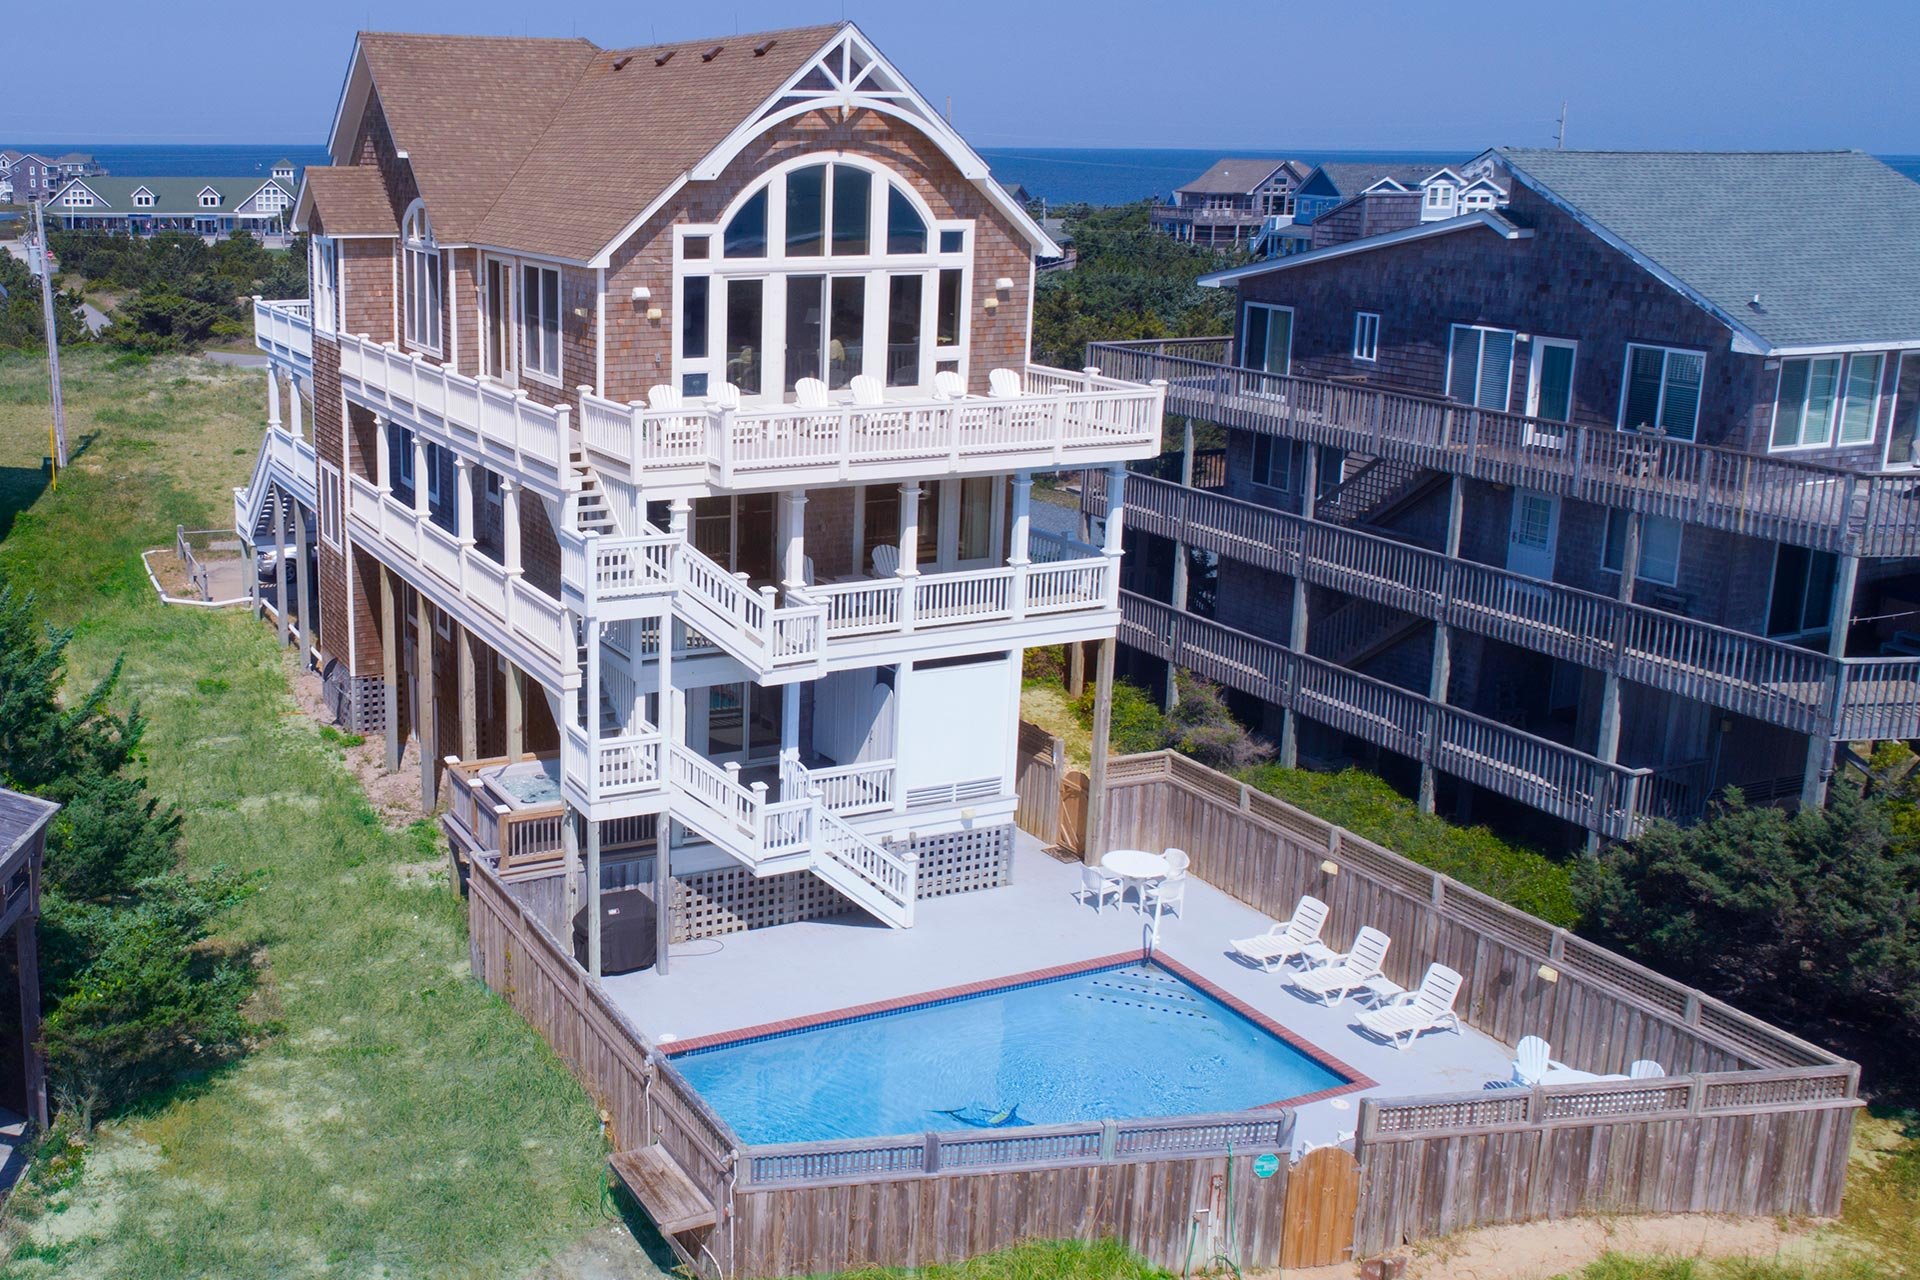 Monkey S Beach House 270 7 Bedroom Ocean Front Home In Avon Obx Nc